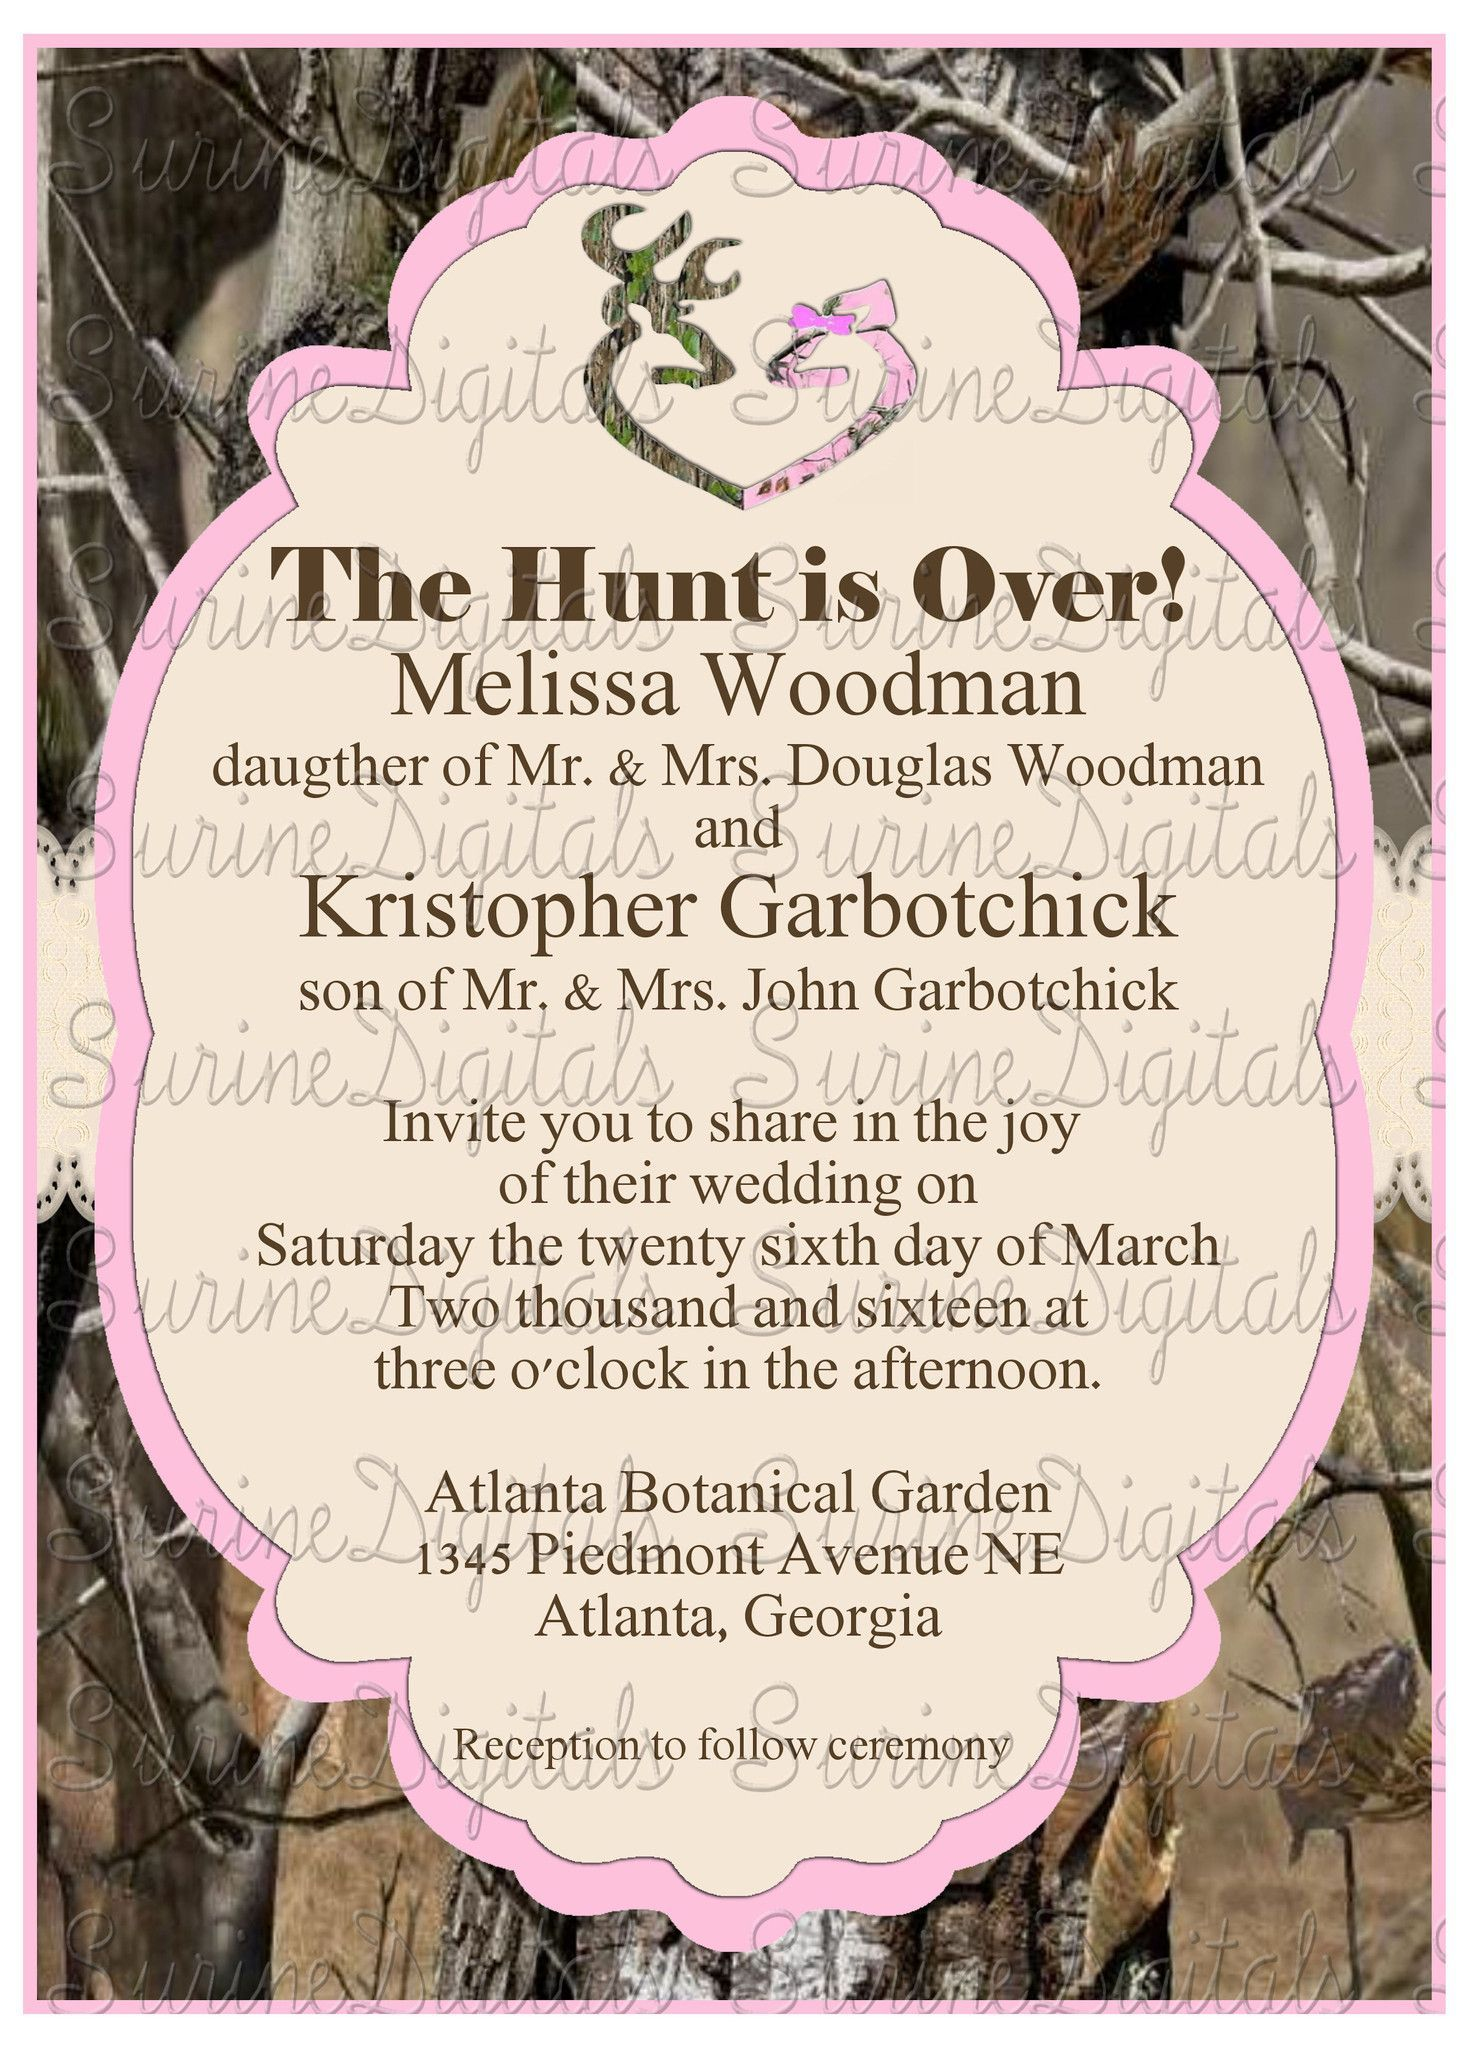 Pink and Camo Wedding Invitation with Buck and Doe Heart Hunting